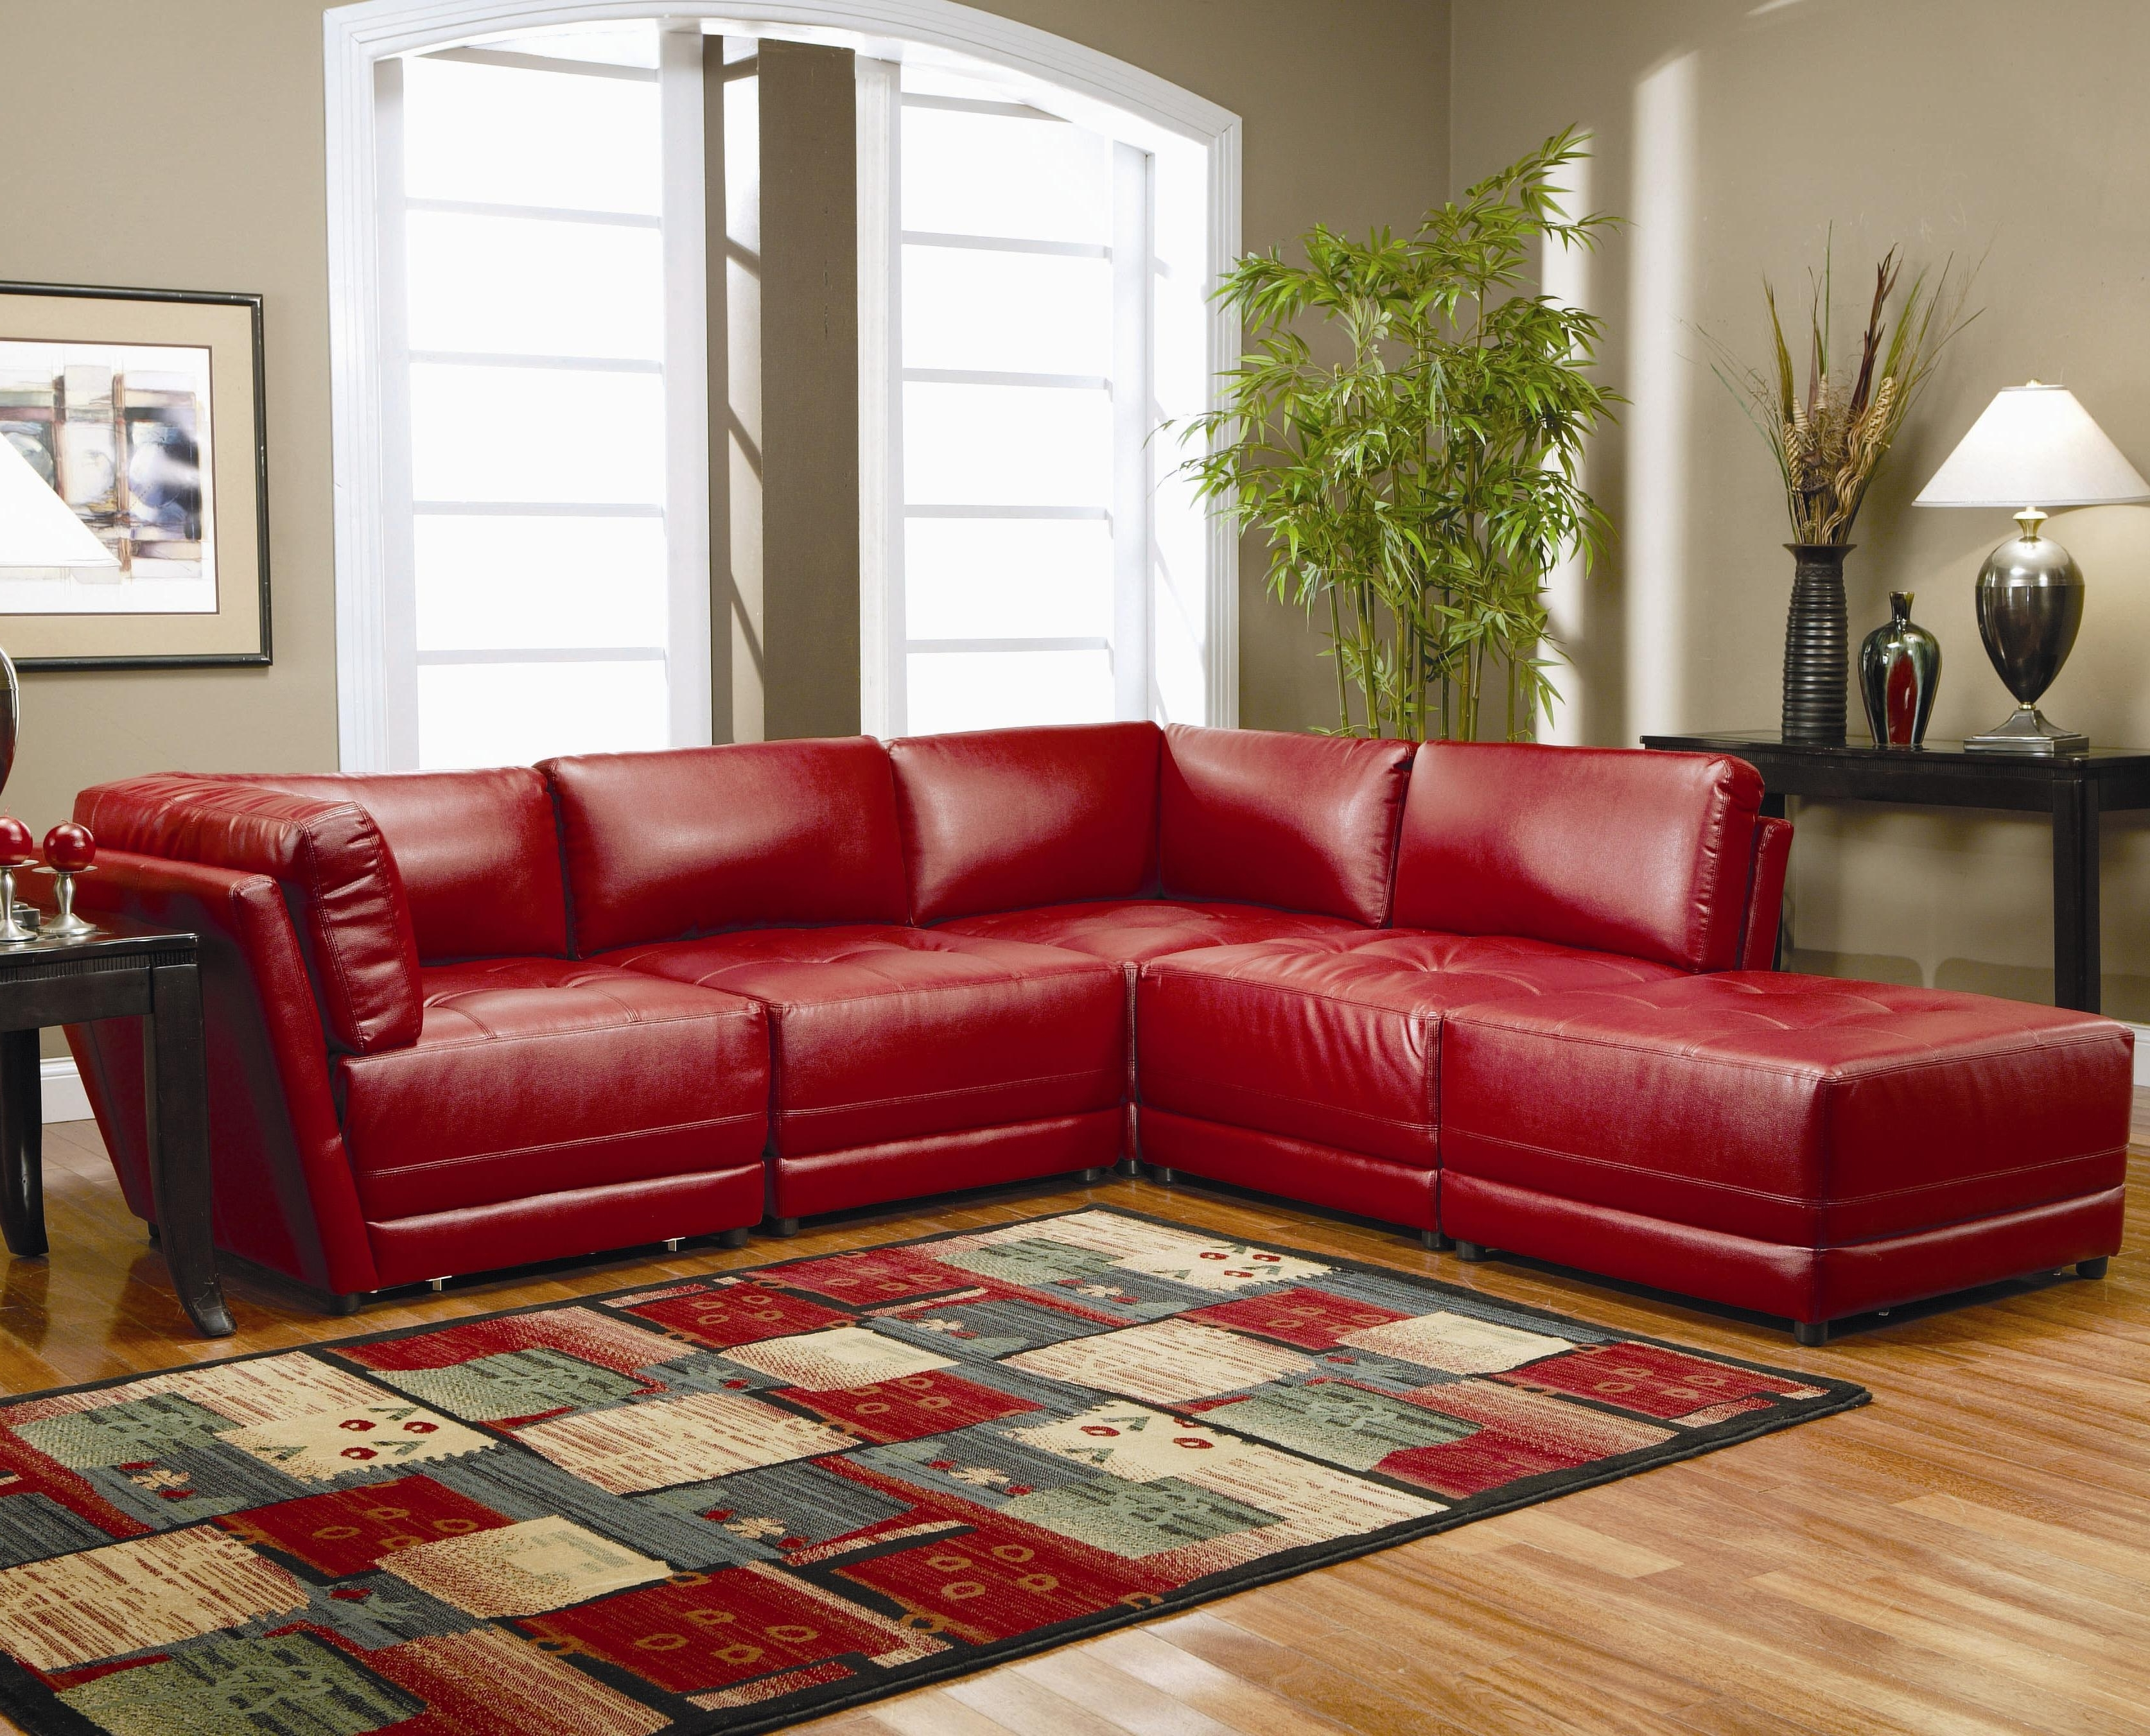 Warm Red Leather Sectional L Shaped Sofa Design Ideas For Living Intended For Latest Small Red Leather Sectional Sofas (View 15 of 15)